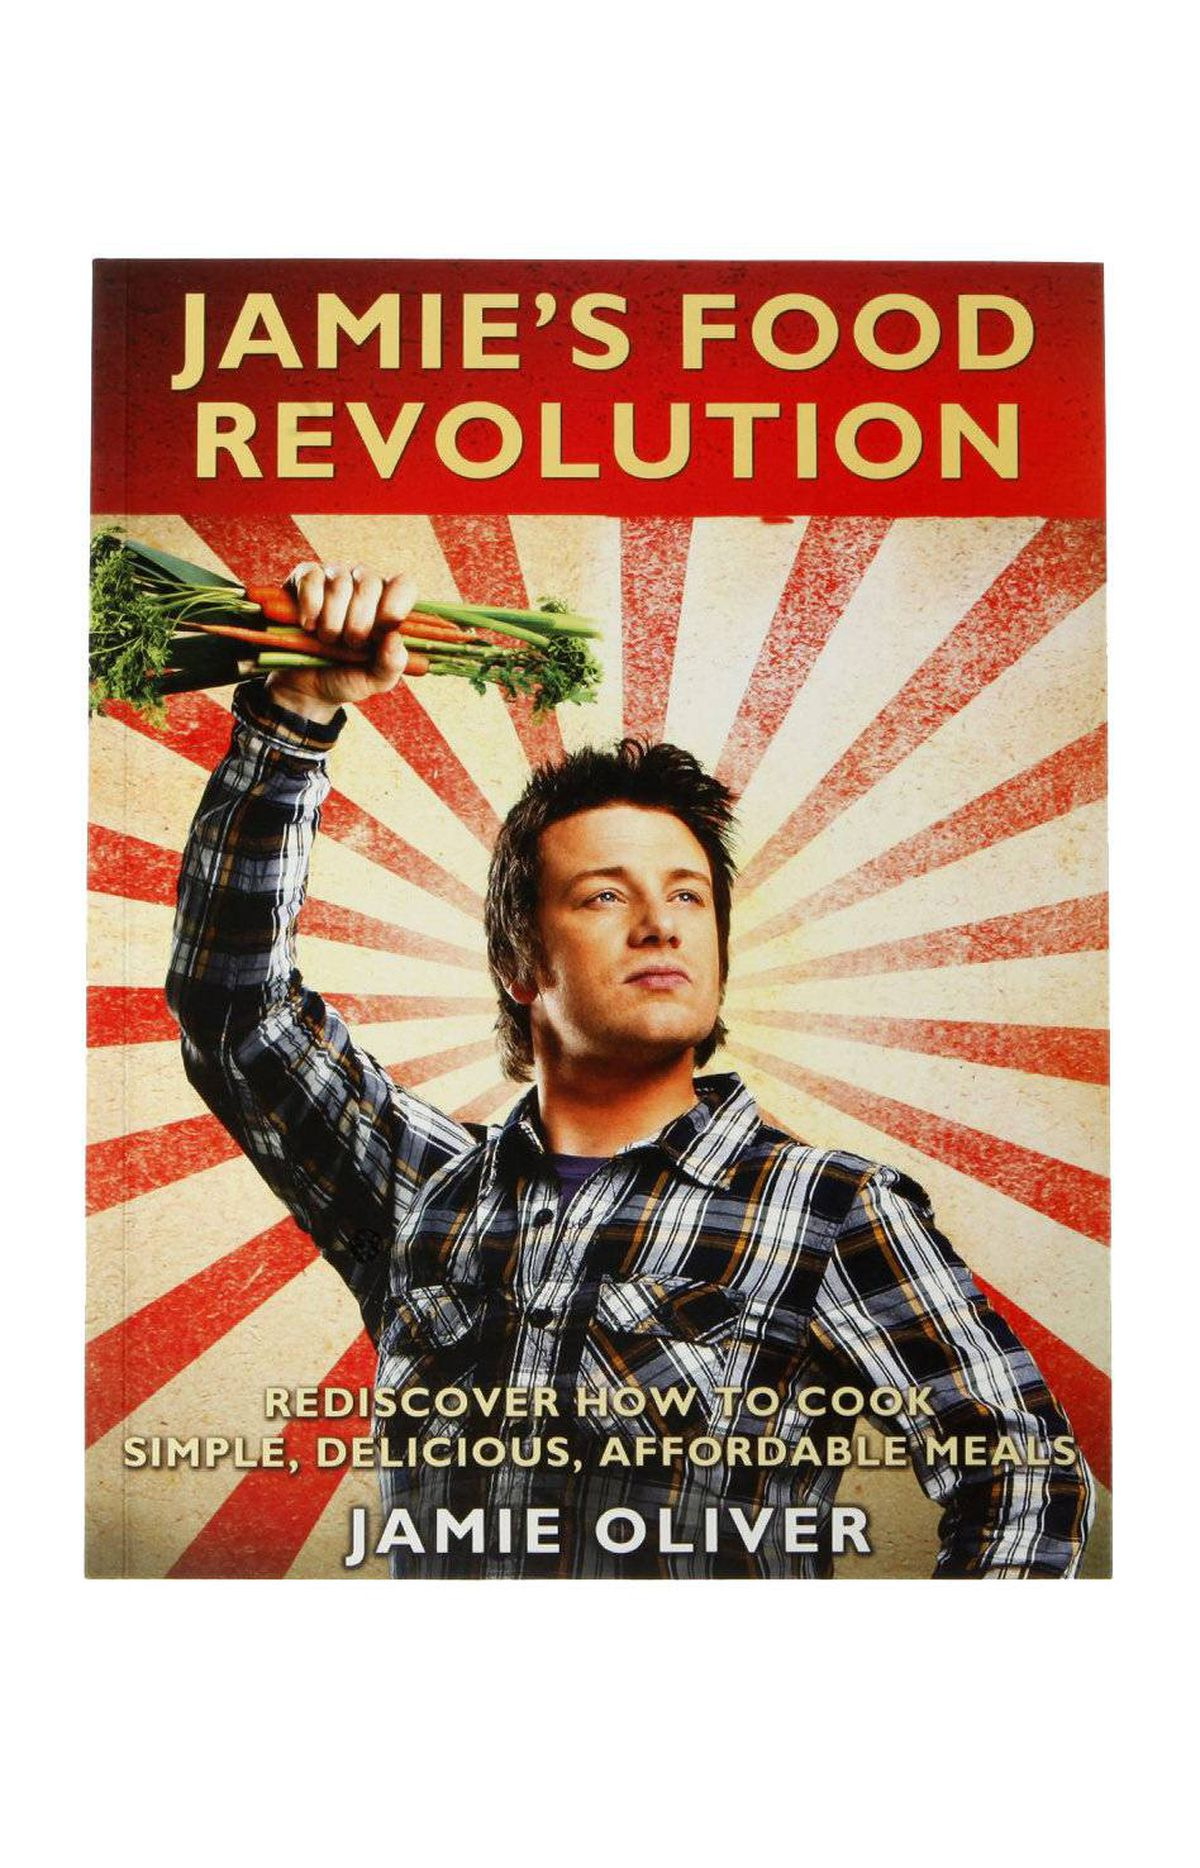 Jamie's Food Revolution: Rediscover How To Cook Simple, Delicious, Affordable Meals (Hyperion, paperback) One of the best-reviewed cookbooks of recent years, and little wonder, as Oliver uses the main thrust of recent TV series as its core value – good meals are easily and cheaply made. Well-illustrated and clearly written – with some anti-fast-food proselytizing - it has curry recipes that are highly recommended ($16.49 at amazon.ca)